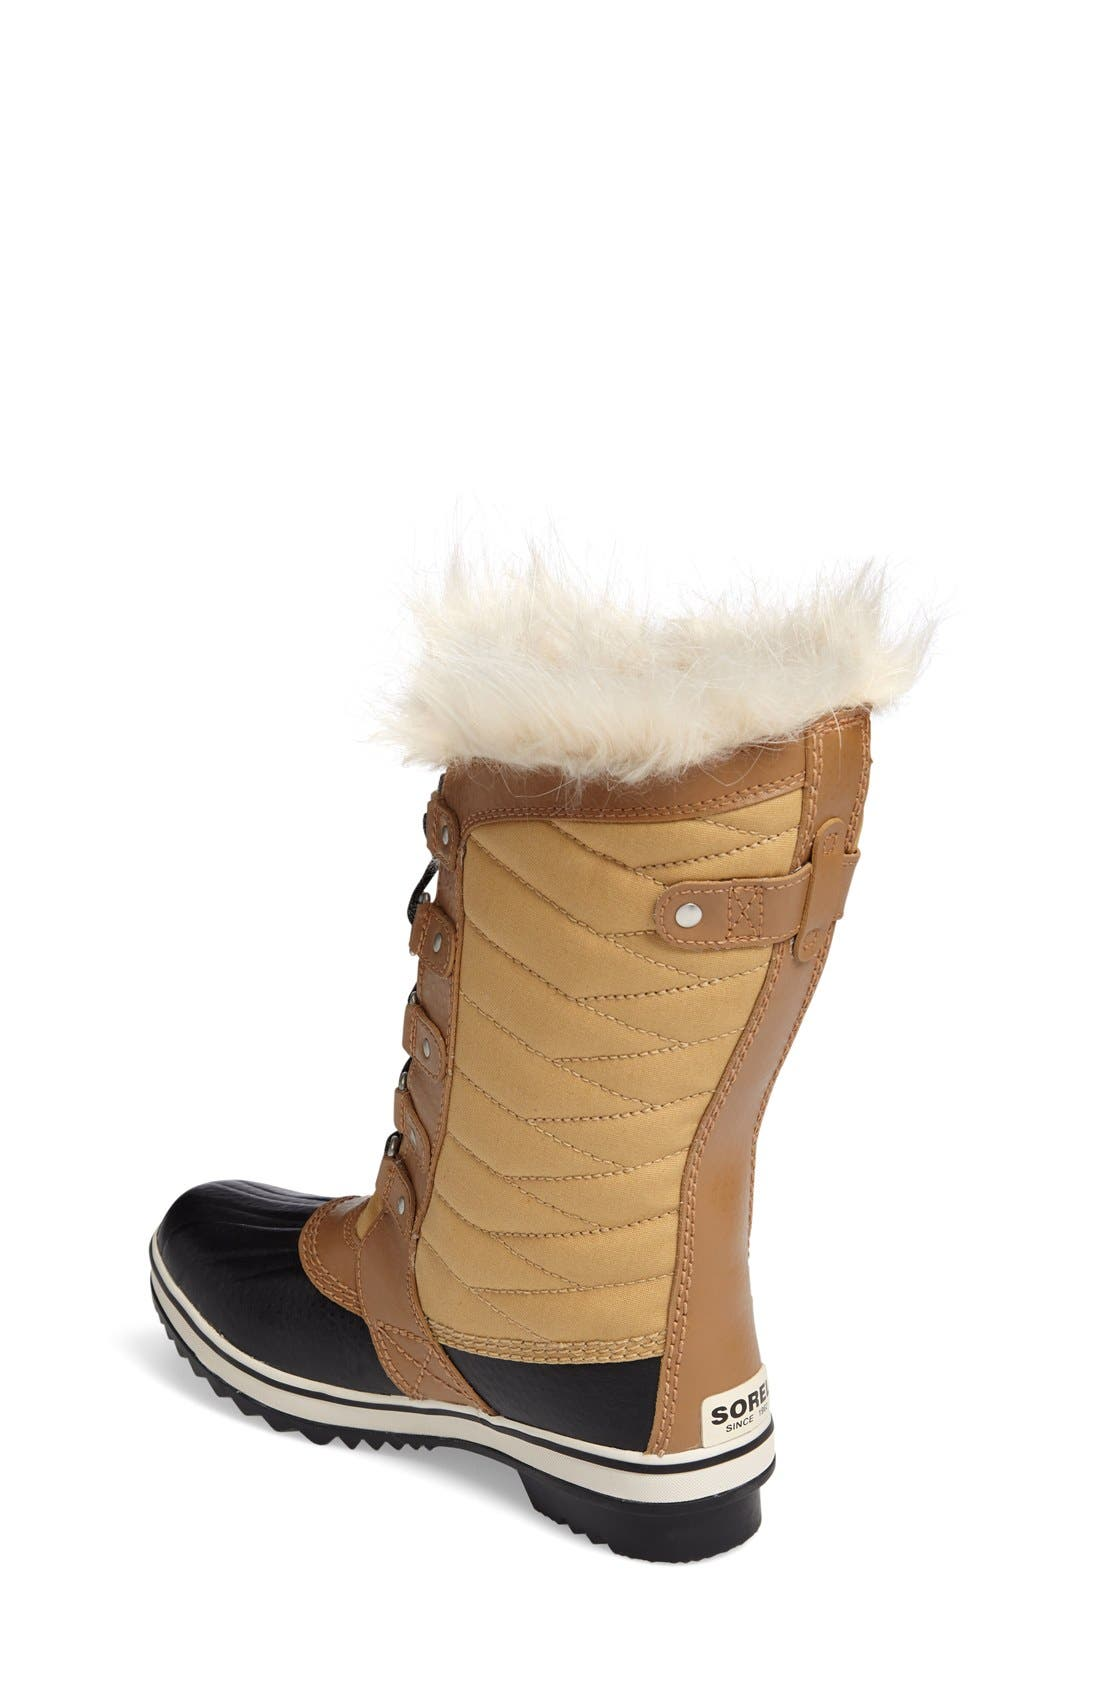 Tofino II Faux Fur Lined Waterproof Boot,                             Alternate thumbnail 2, color,                             CURRY/ ELK